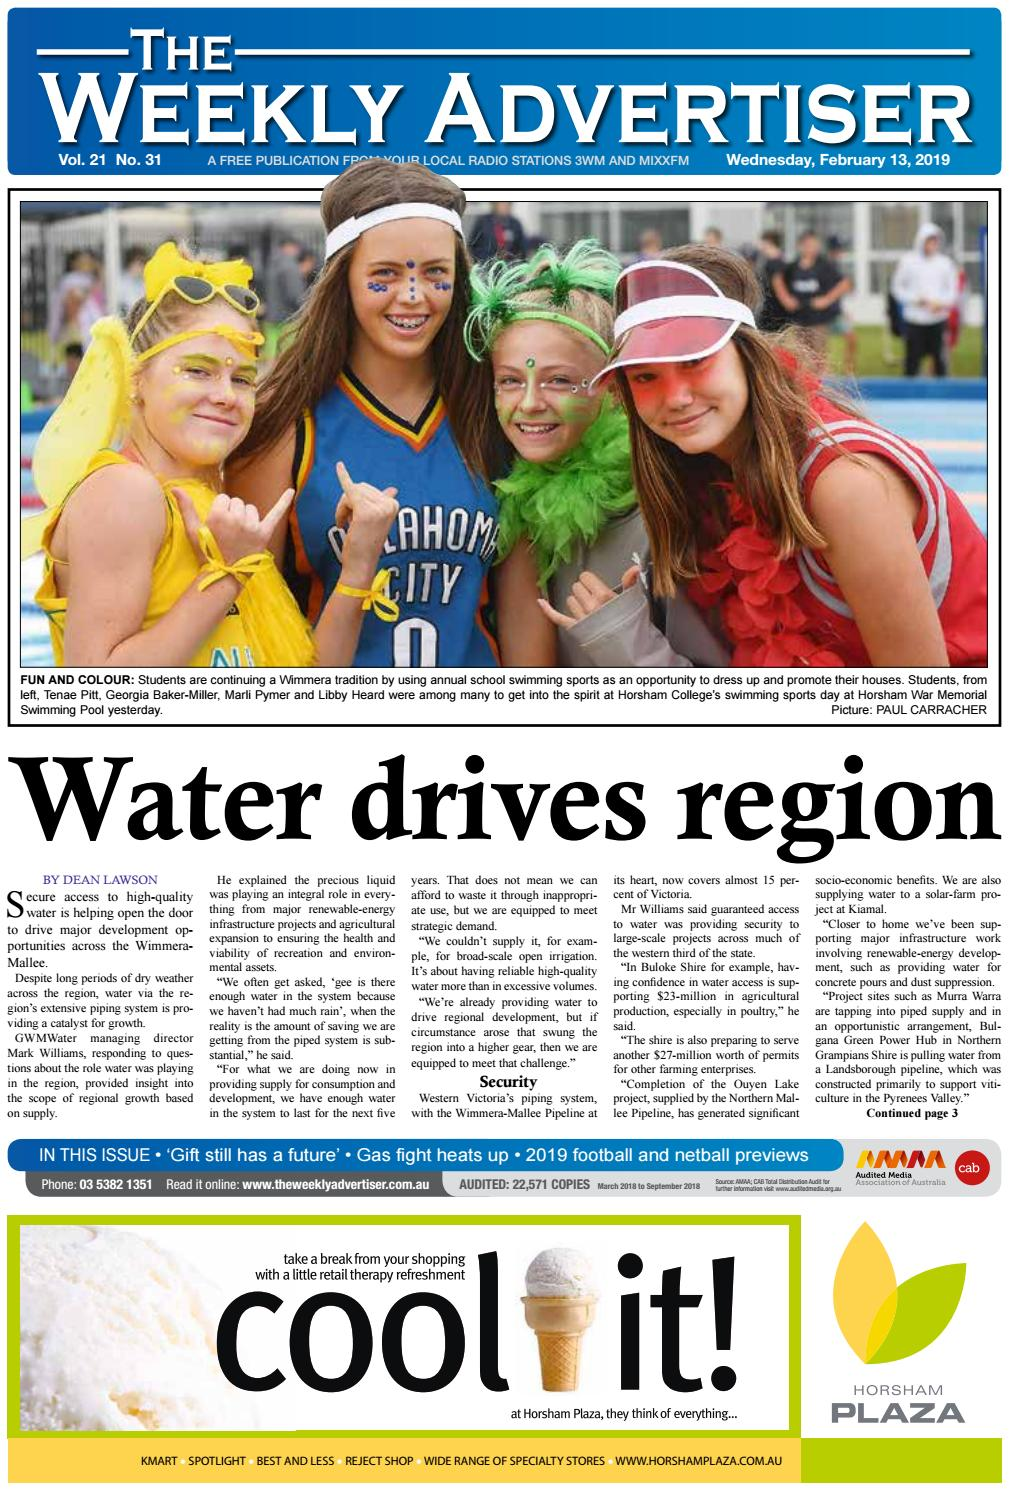 a6e9d9923b2e The Weekly Advertiser - Wednesday